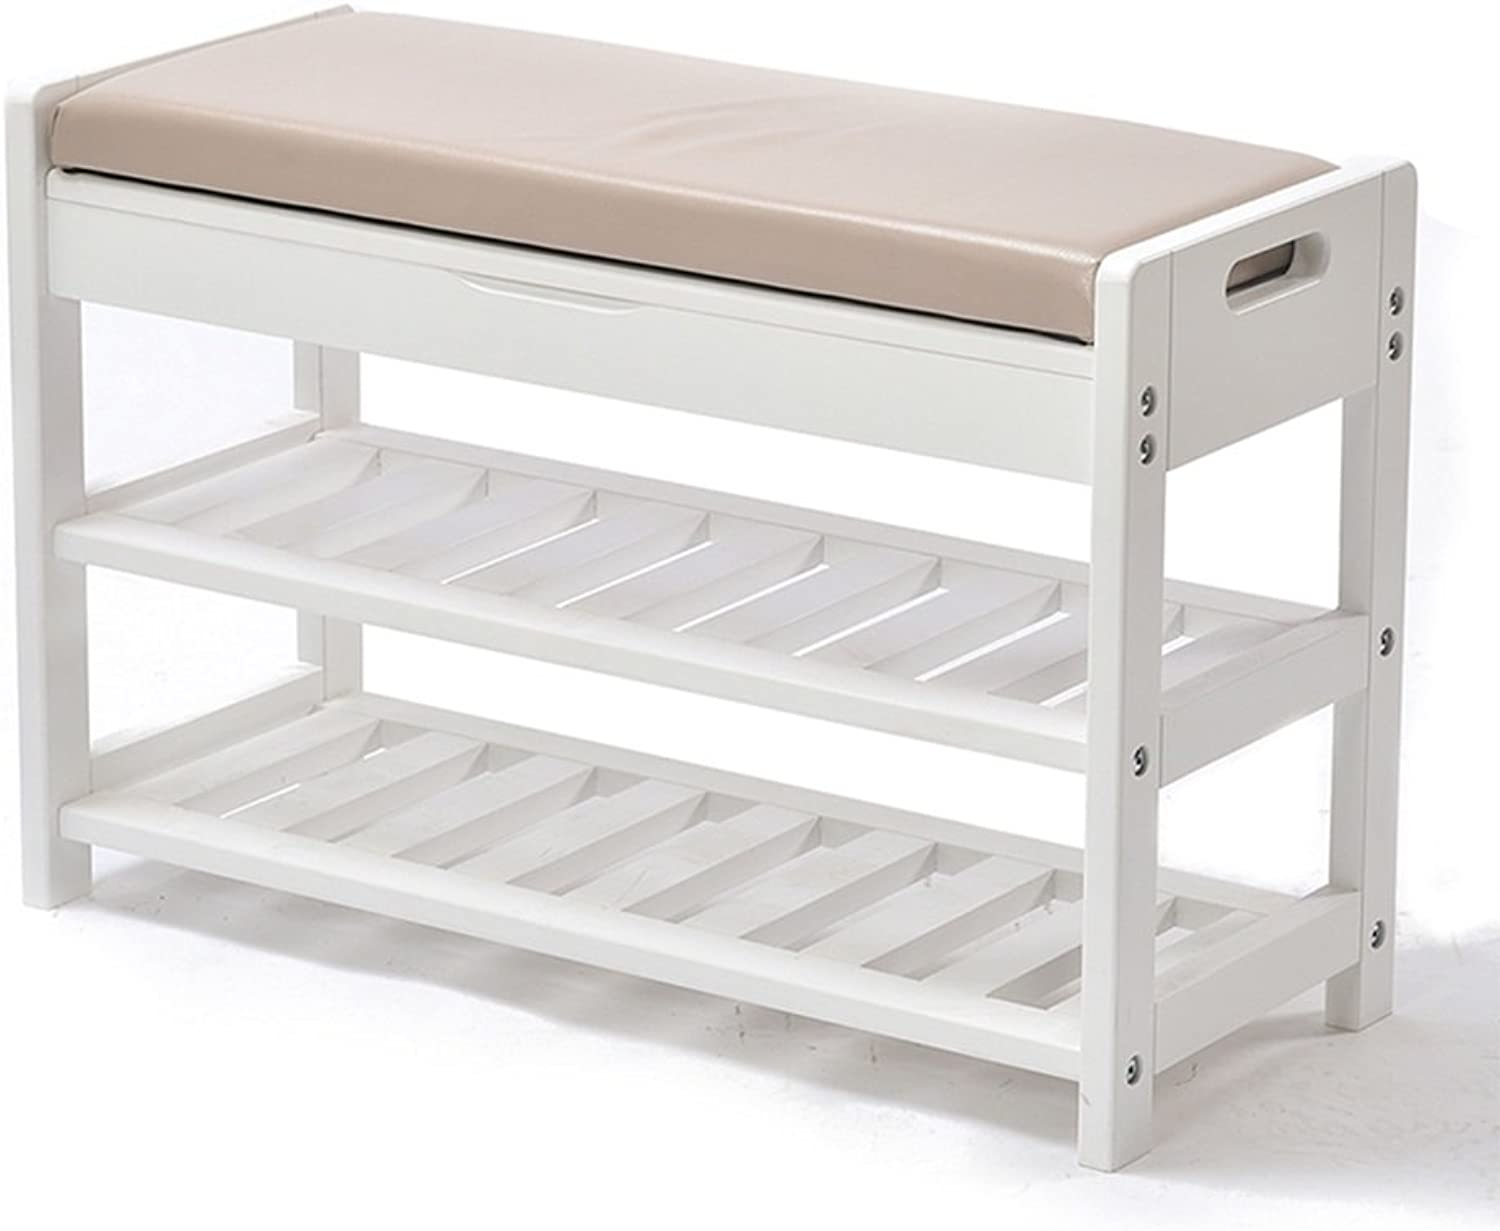 Solid white 3 layers PU cushion Double sided handle Solid wood frame Cassette design High boots Non slip design Suitable for all occasions Modern minimalist storage storage stool ( Size   743049cm )